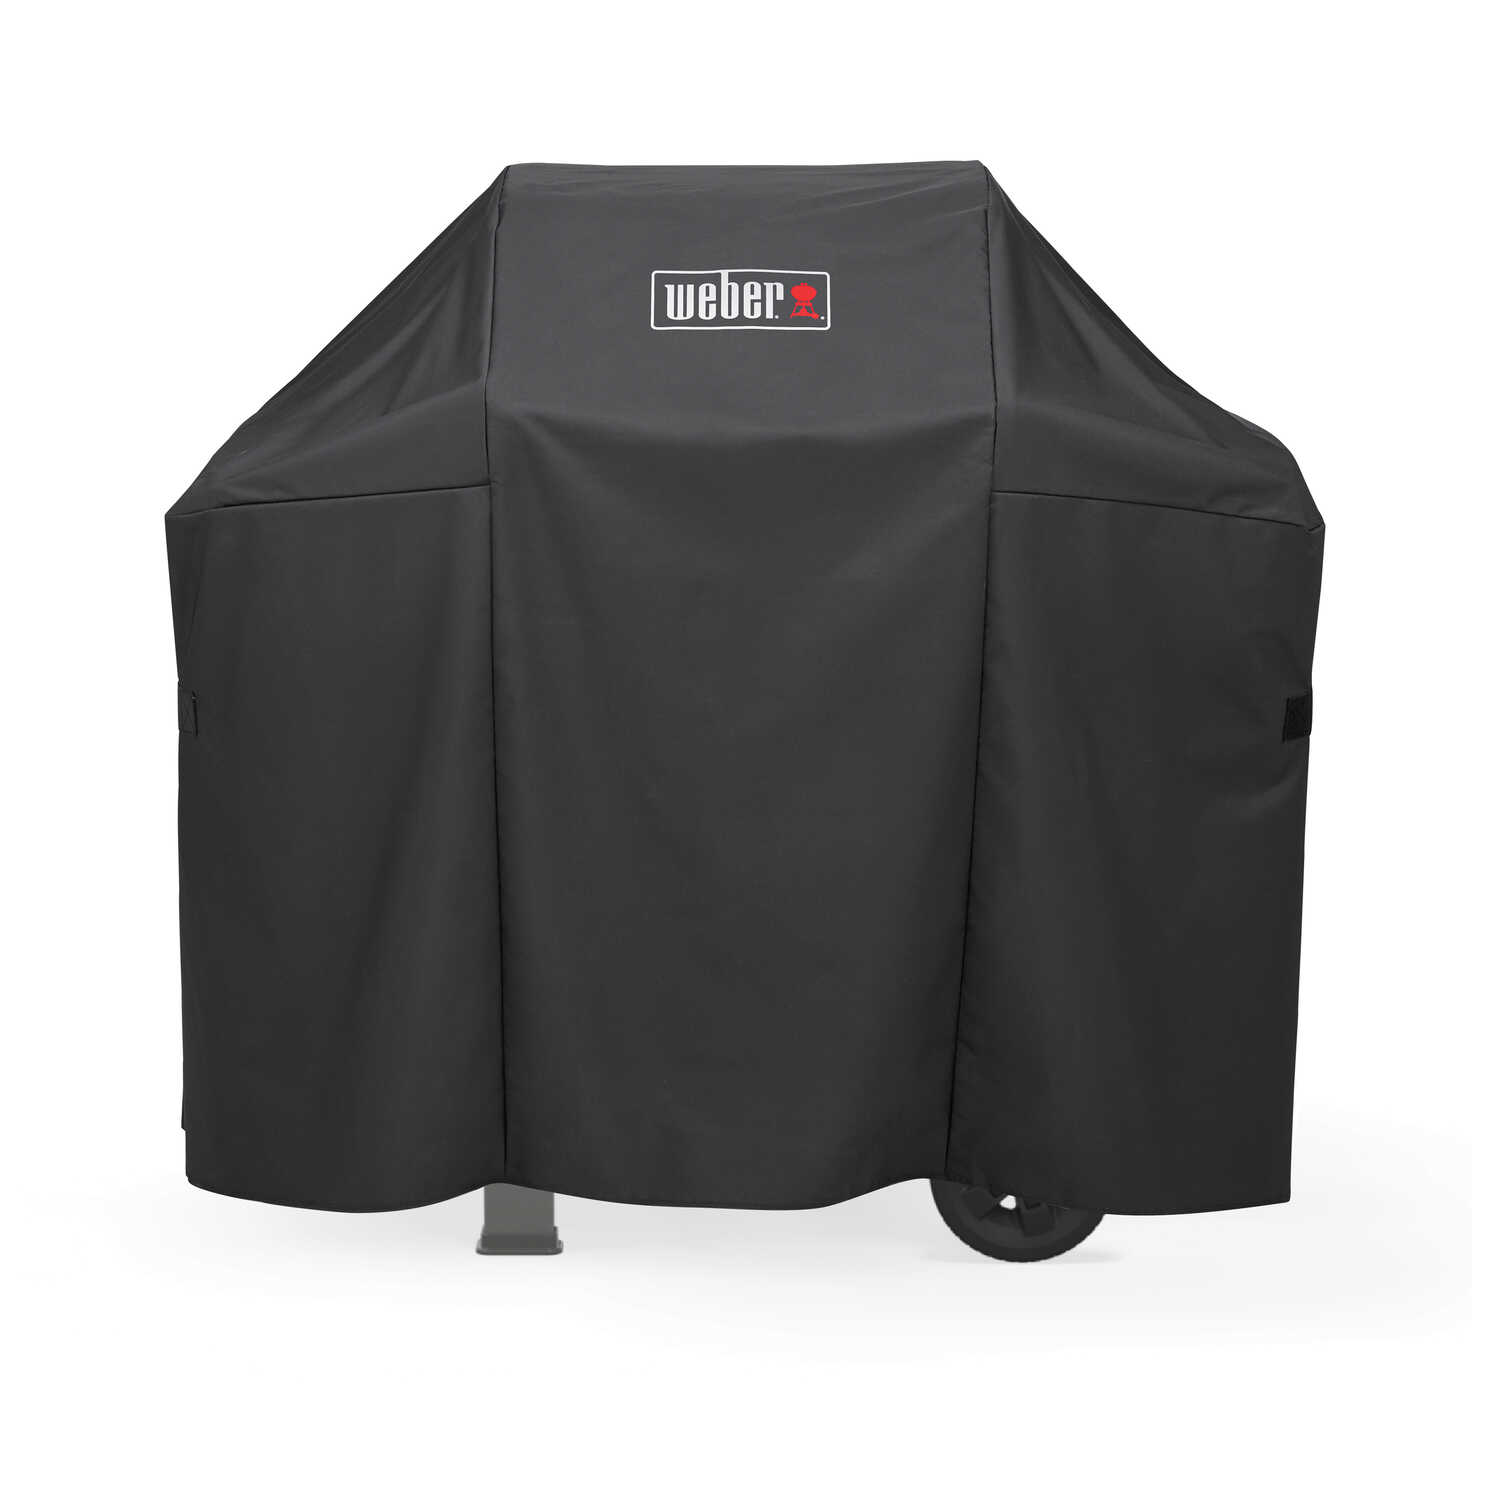 Weber  Black  Grill Cover  48 in. W x 42 in. H x 17.8 in. D For Fits Spirit 200 and Spirit II 200 Se